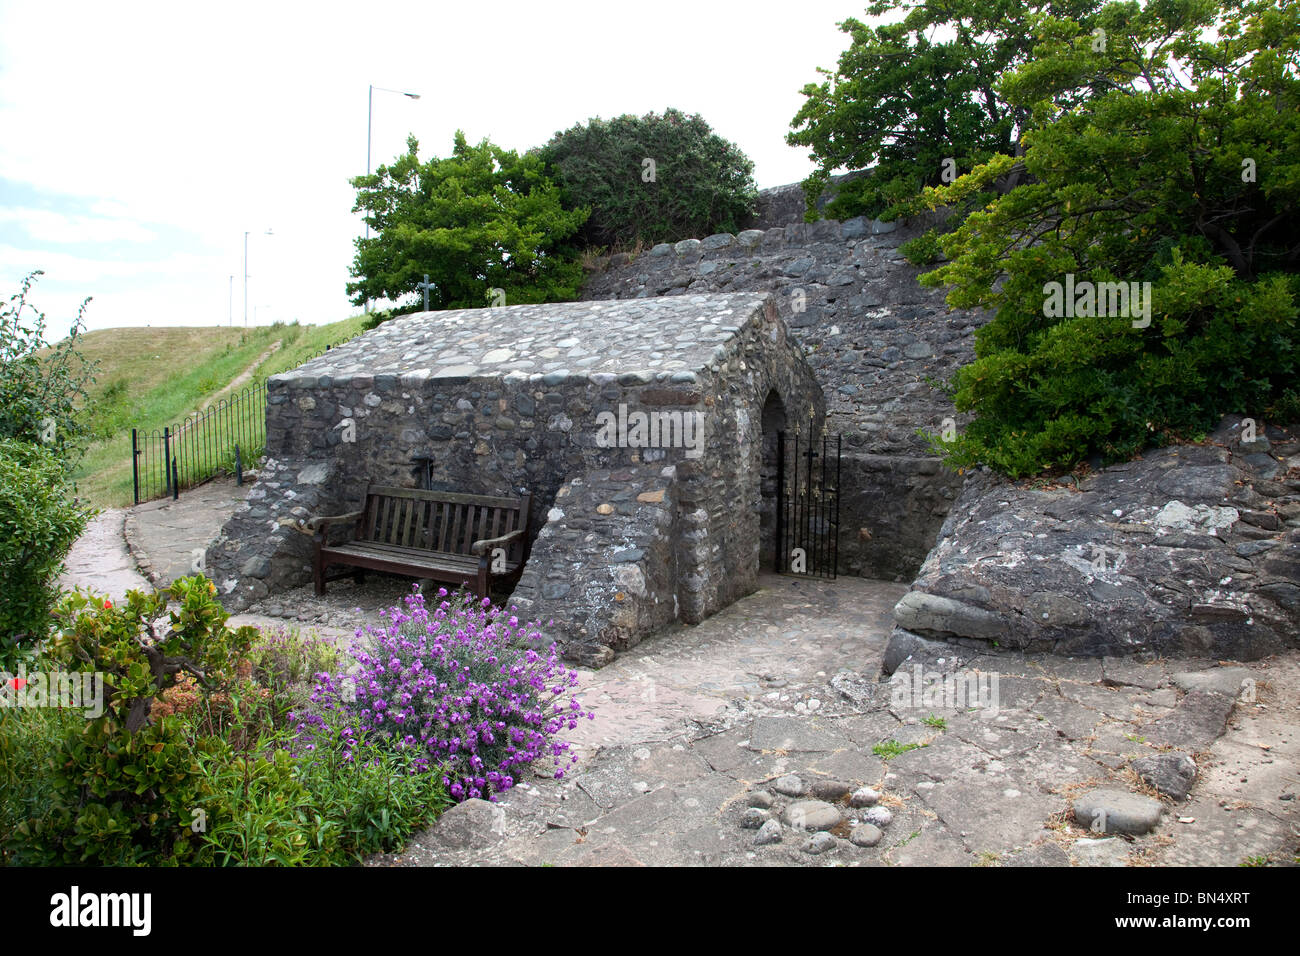 St Trillos Chapel believed to be the smallest church in the British Isles seating only 6 people situated at Rhos - Stock Image